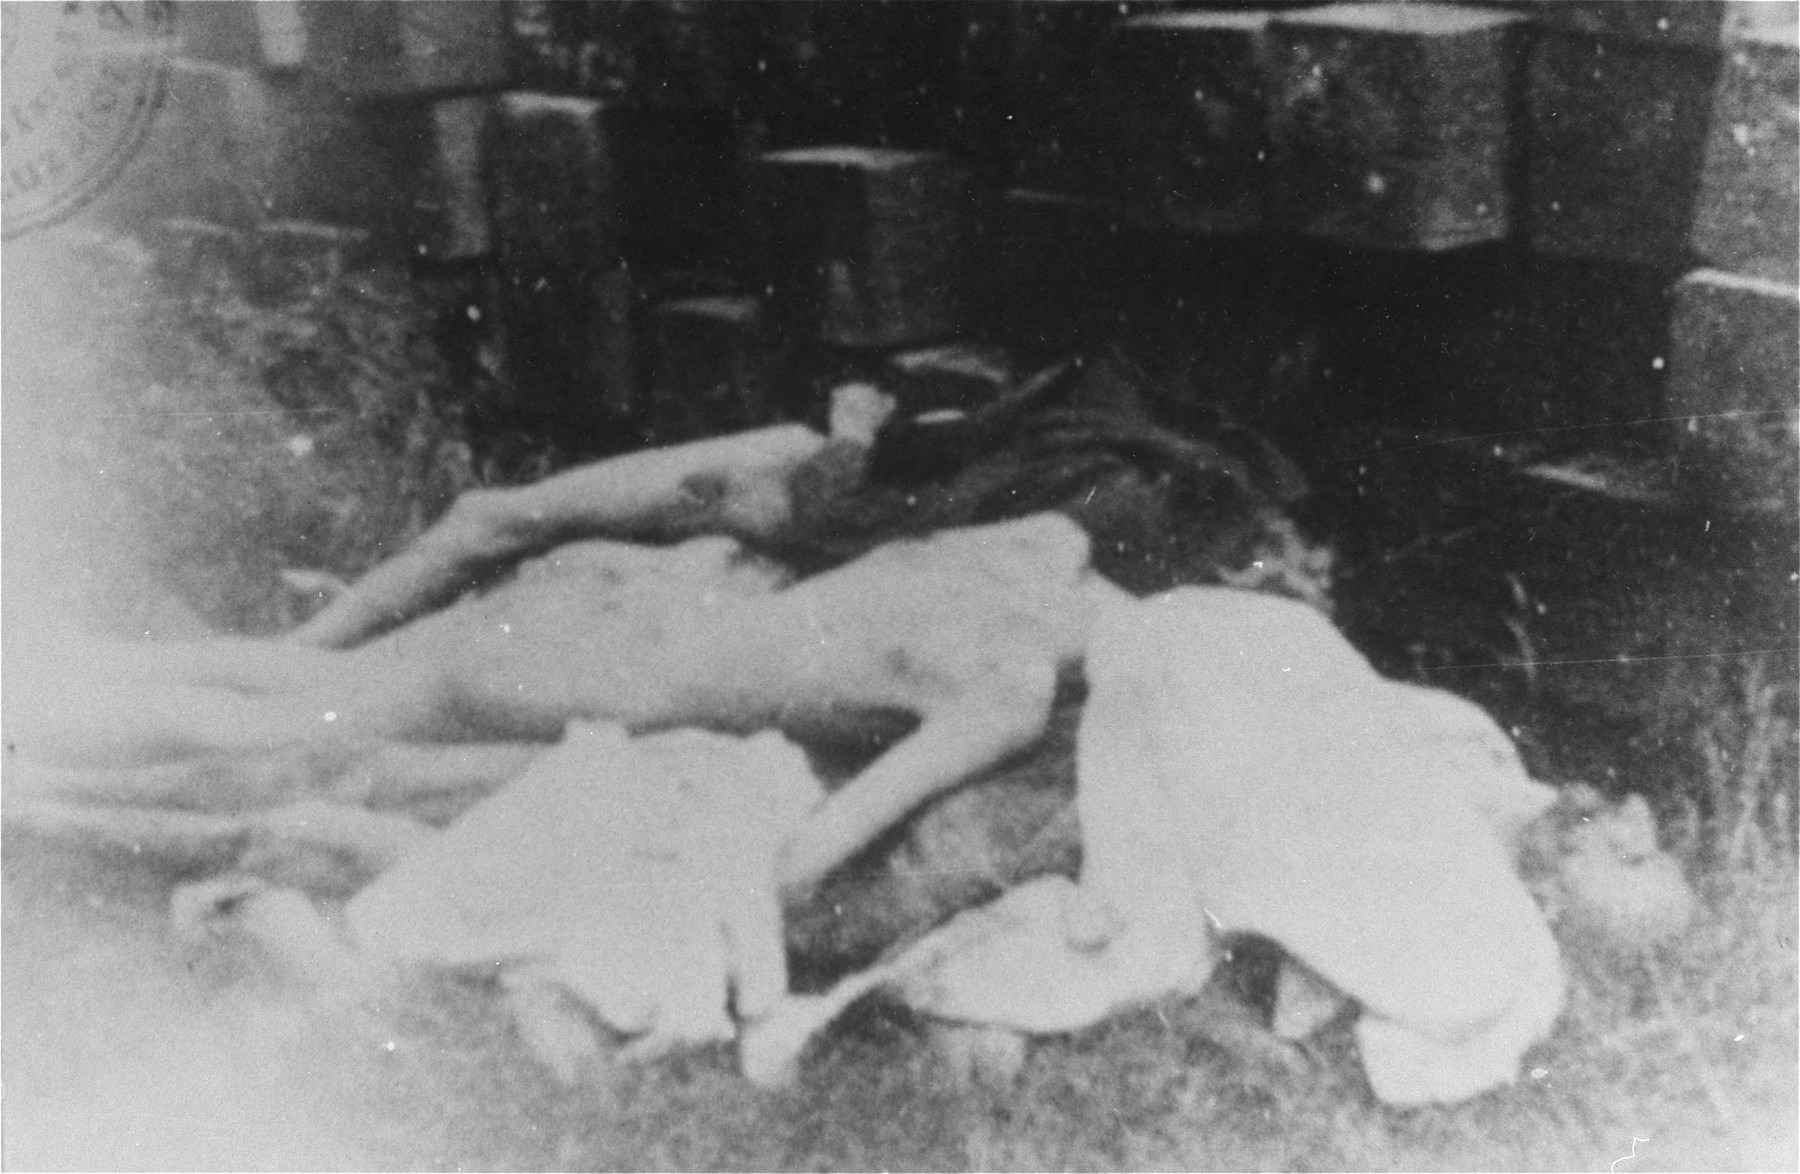 The bodies of Romanian Jews who died on one of two death trains that left Iasi on June 30, 1941.  The first train was bound for Calarasi and the second for Podul Iloaiei.  This specific picture was taken at Sabaoani.